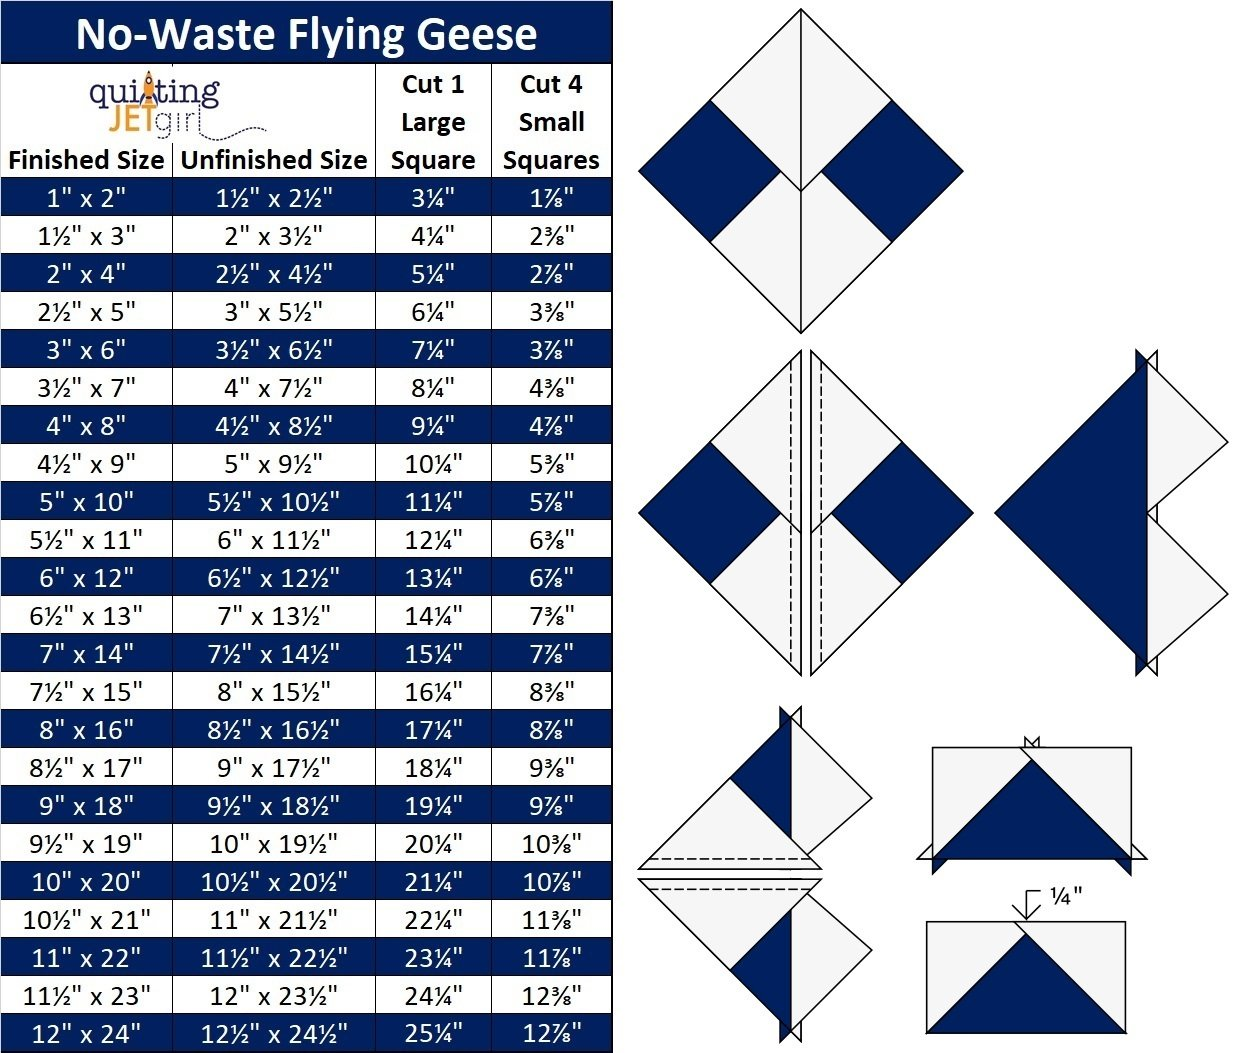 No-Waste Flying Geese Table and Illustration